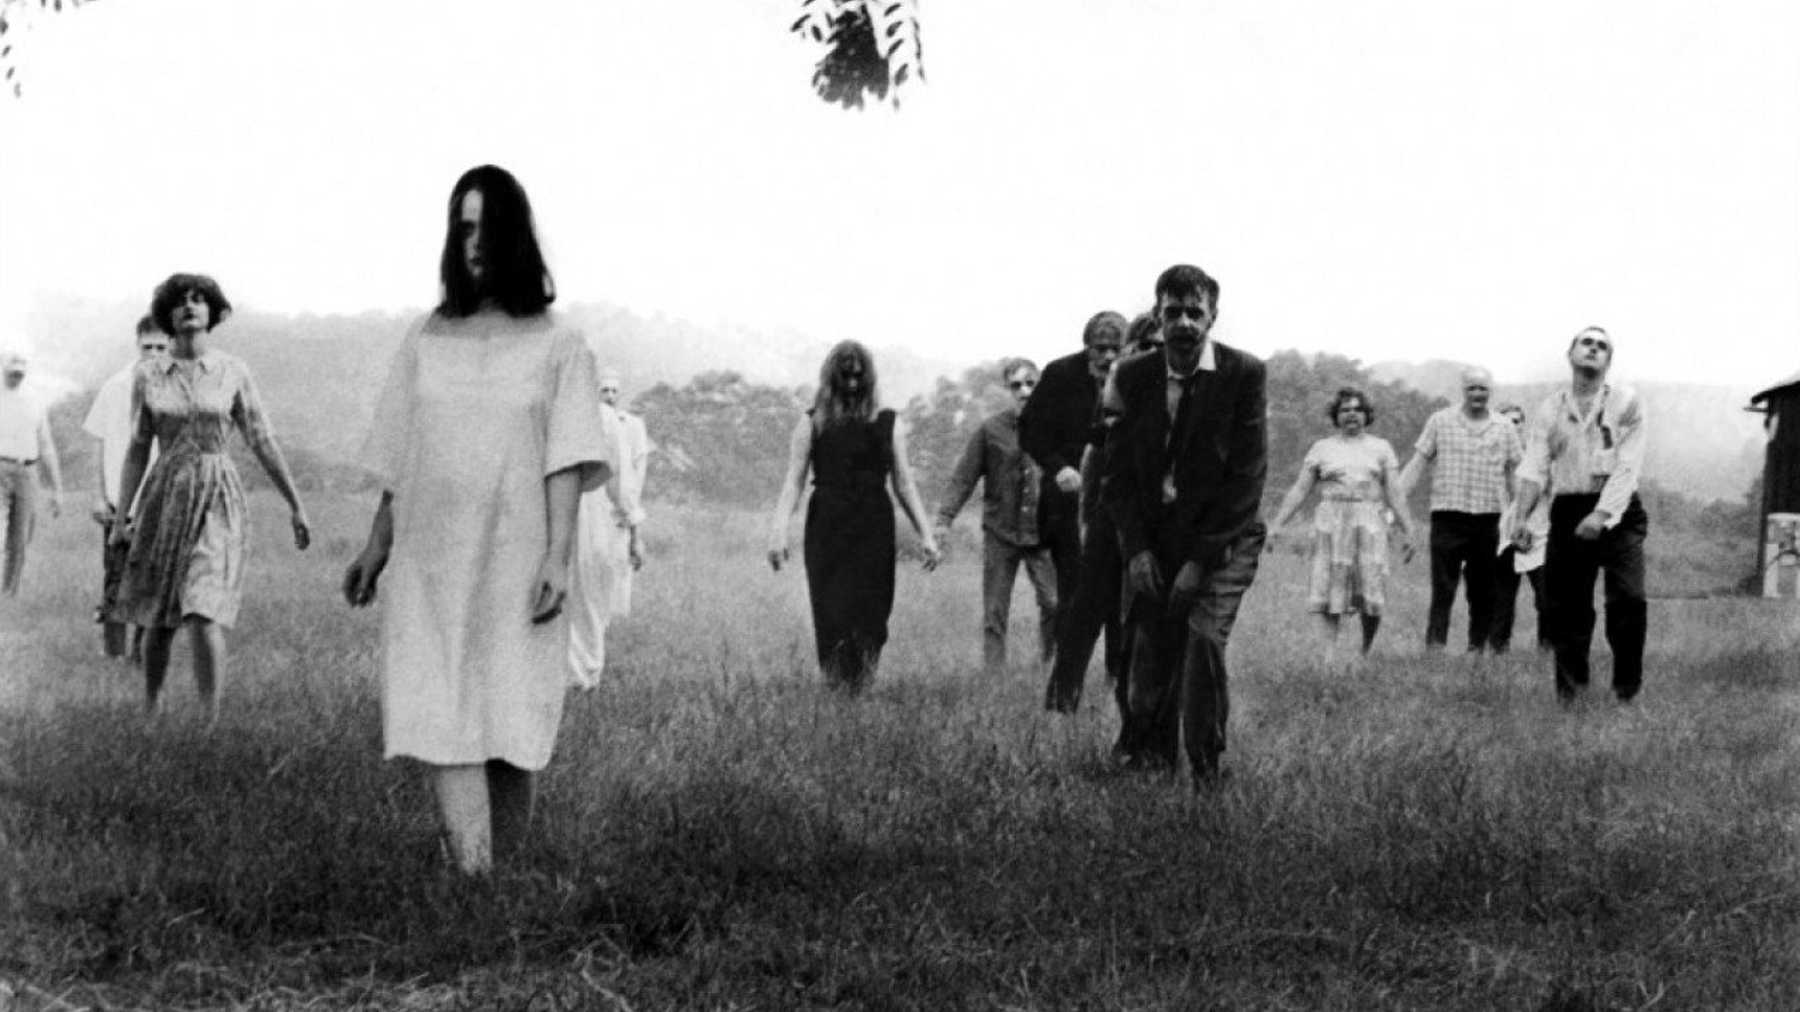 These Are Some of the Best Classic Horror Movies